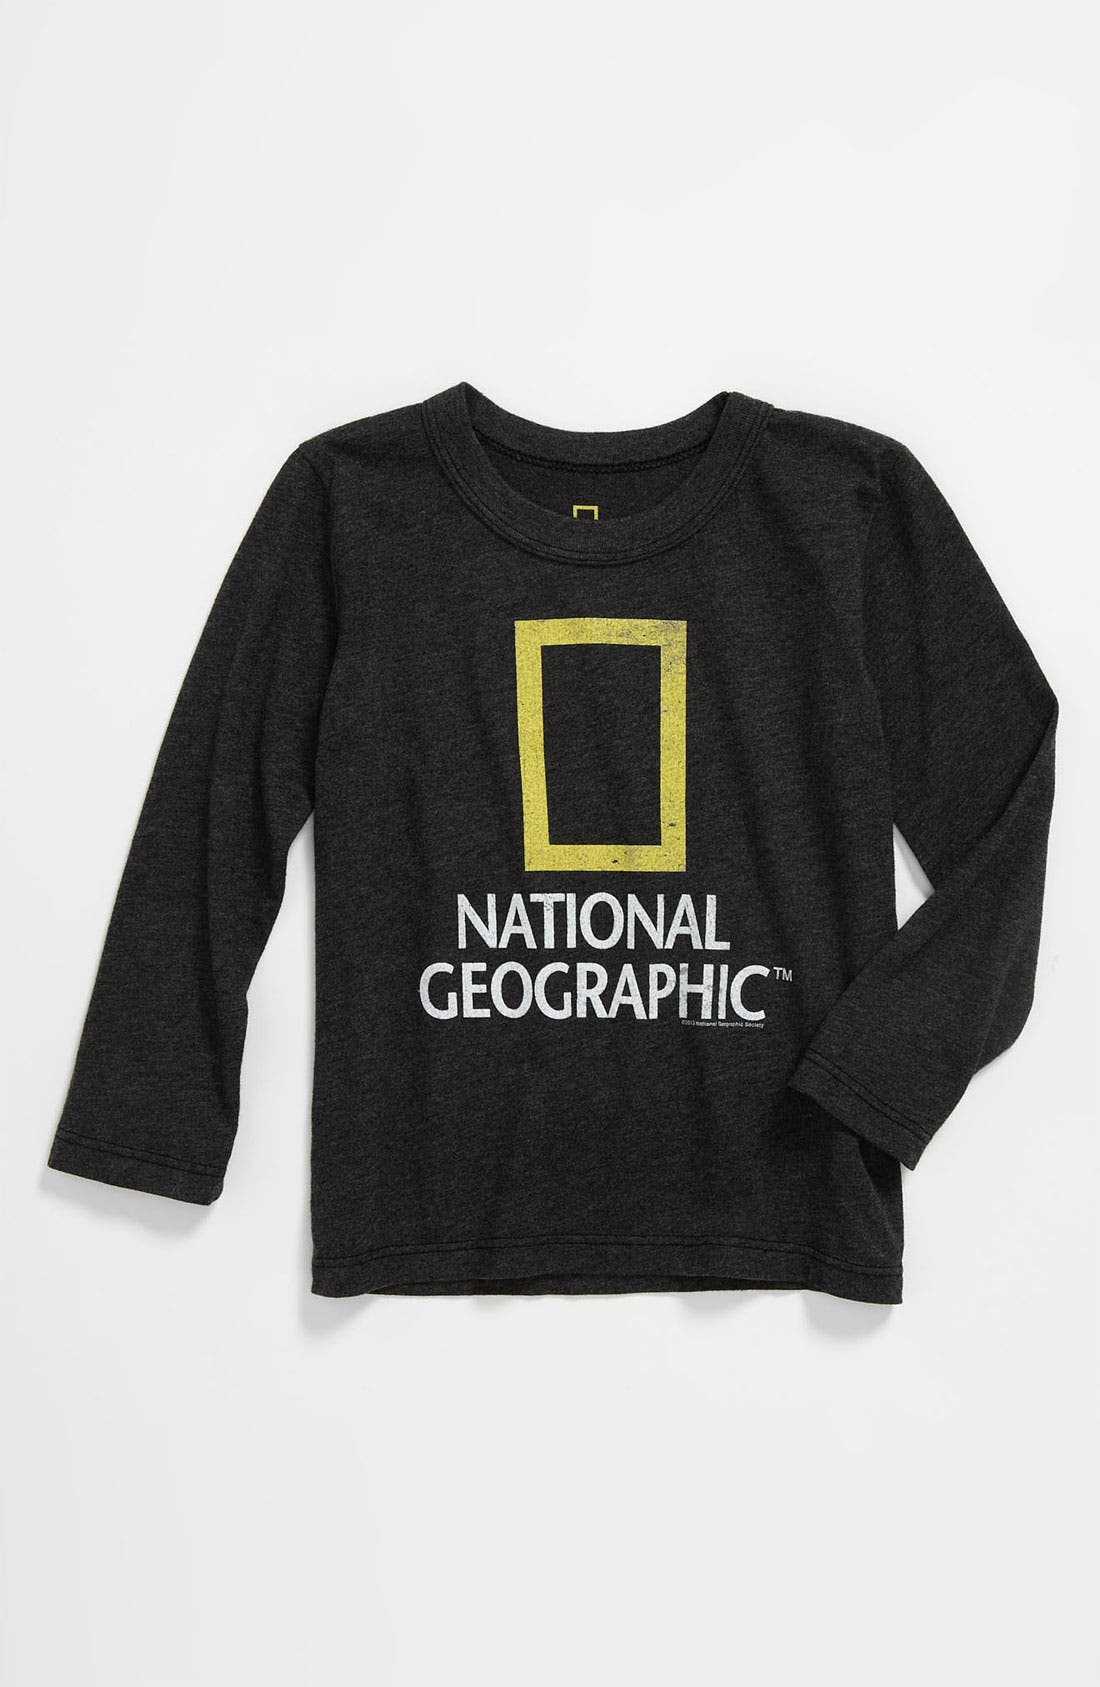 Alternate Image 1 Selected - Chaser 'National Geographic' T-Shirt (Toddler)